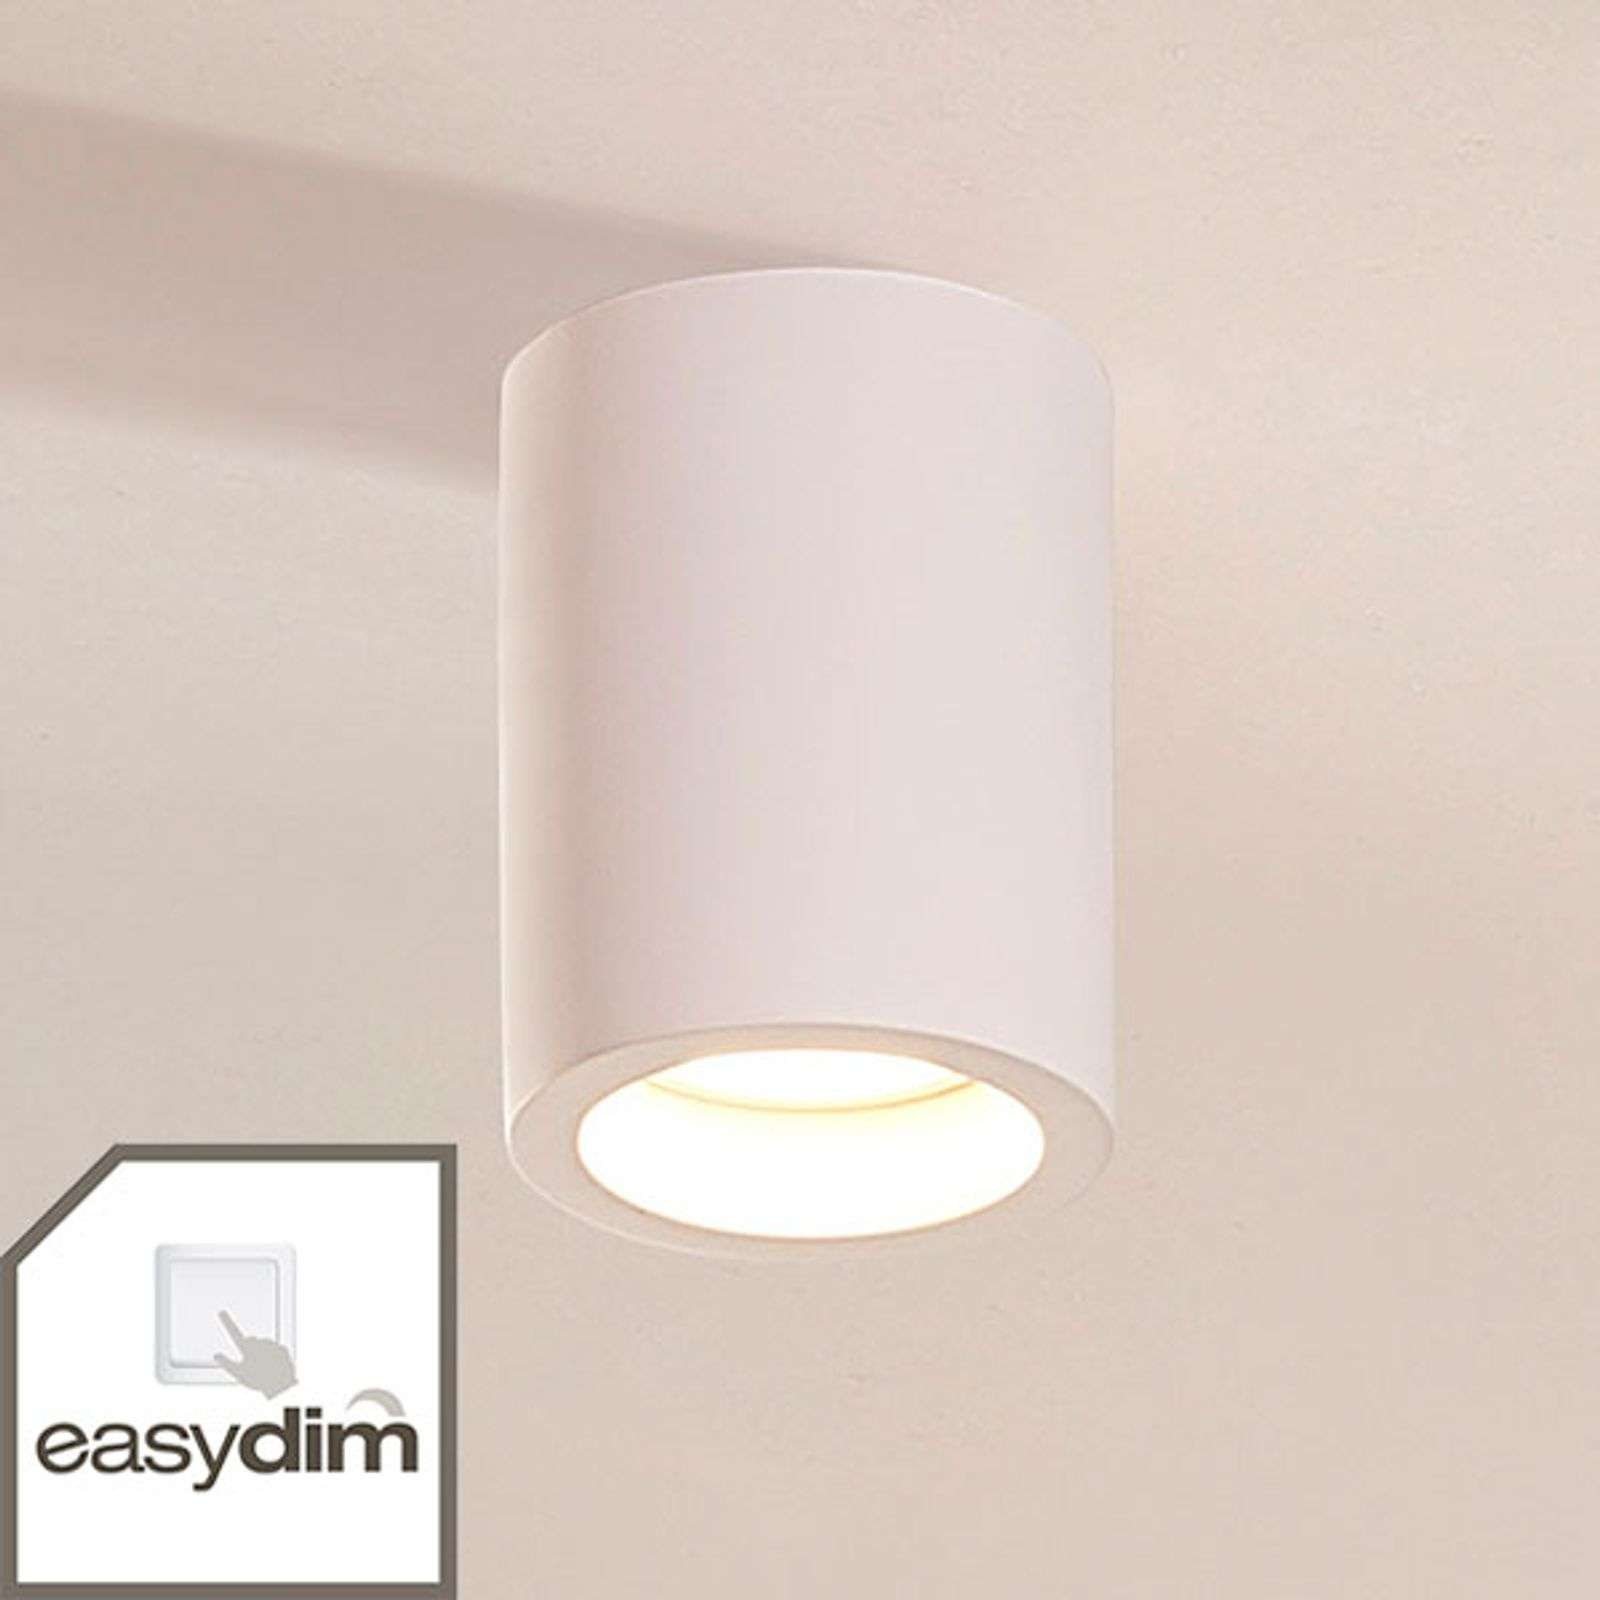 Downlight LED compact Annelies, easydim